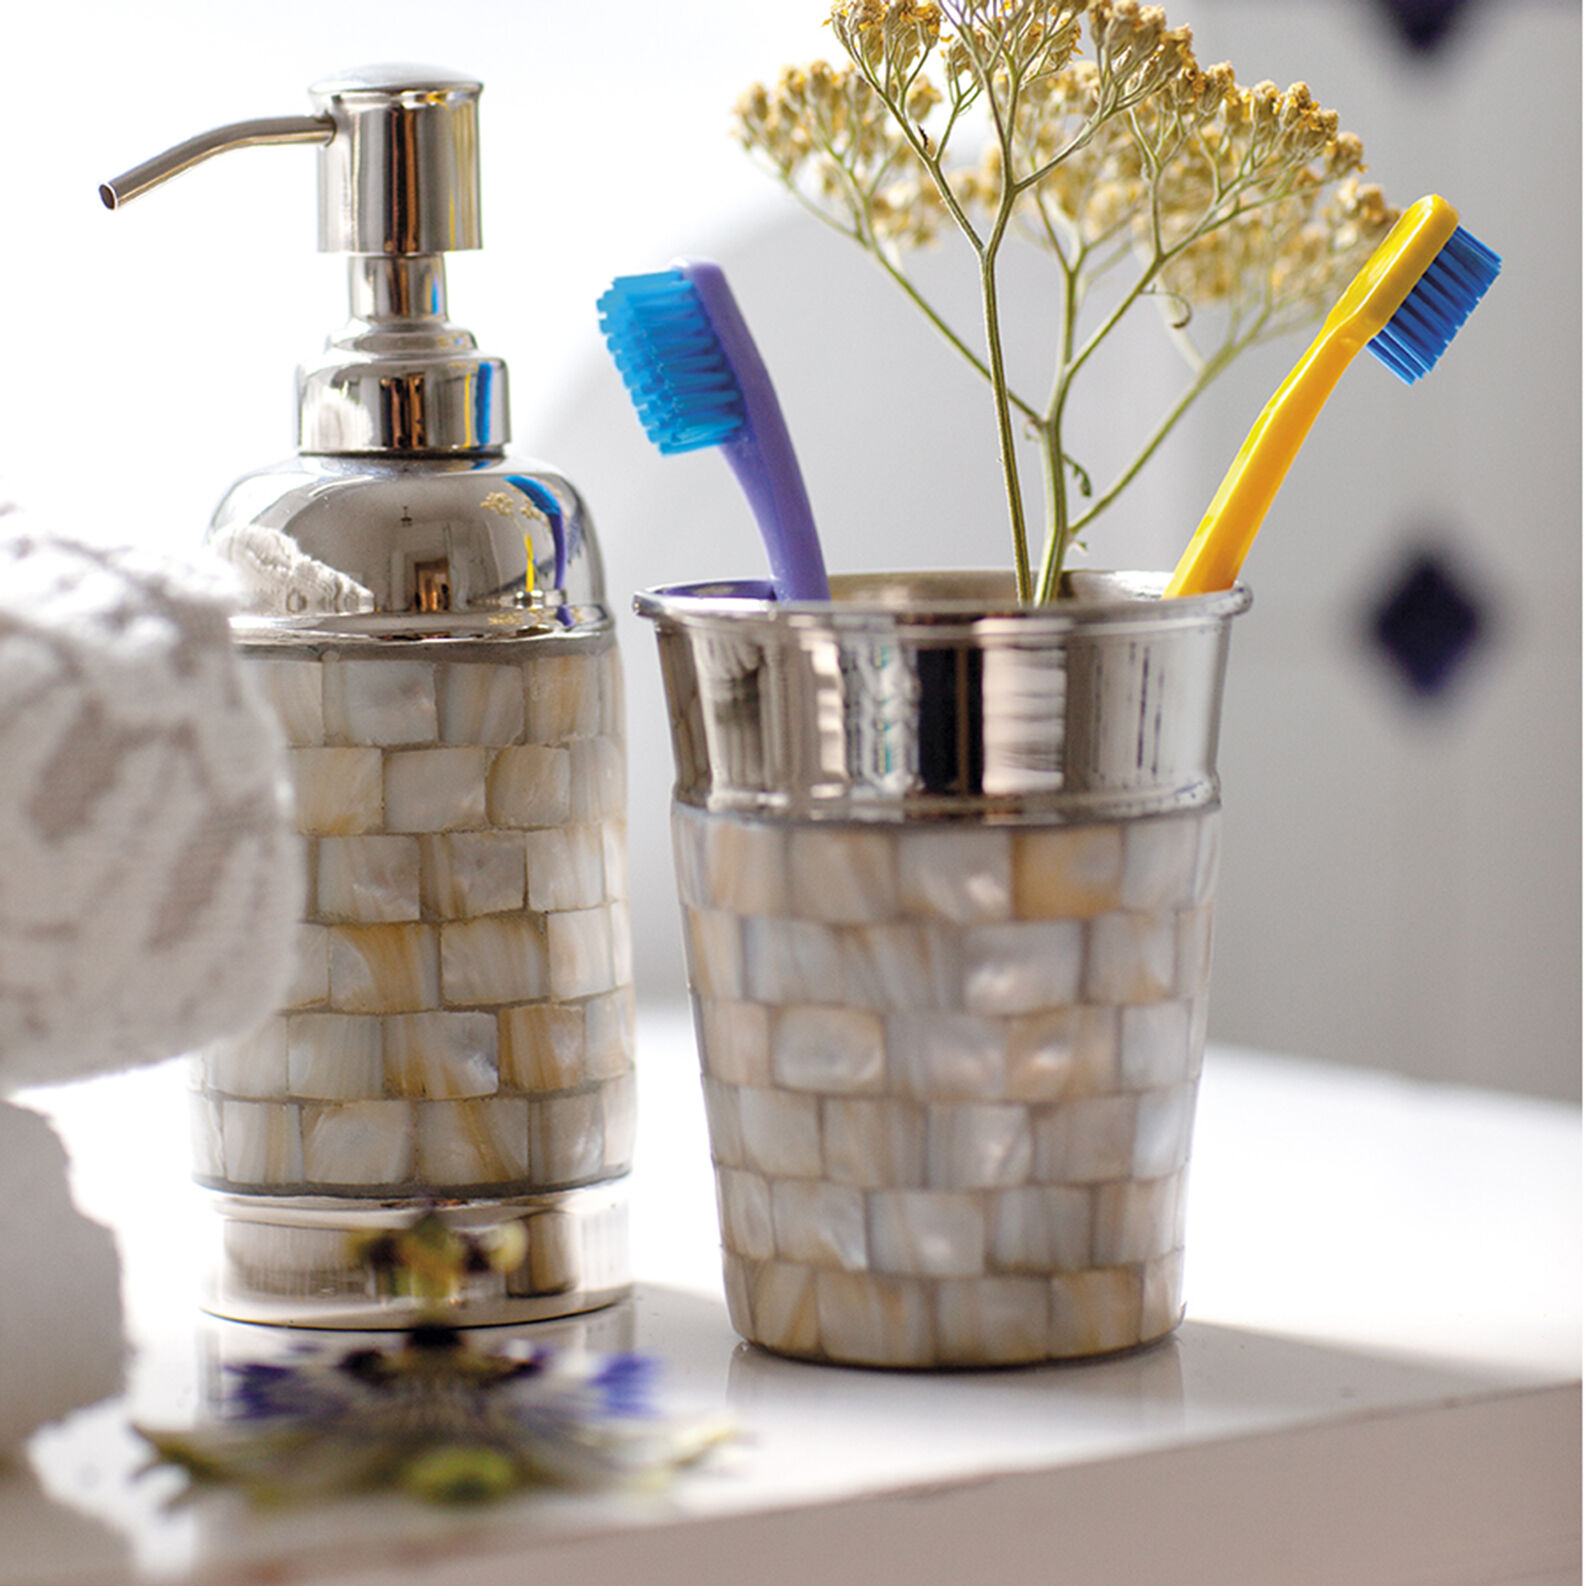 Mosaic-effect mosaic dispenser